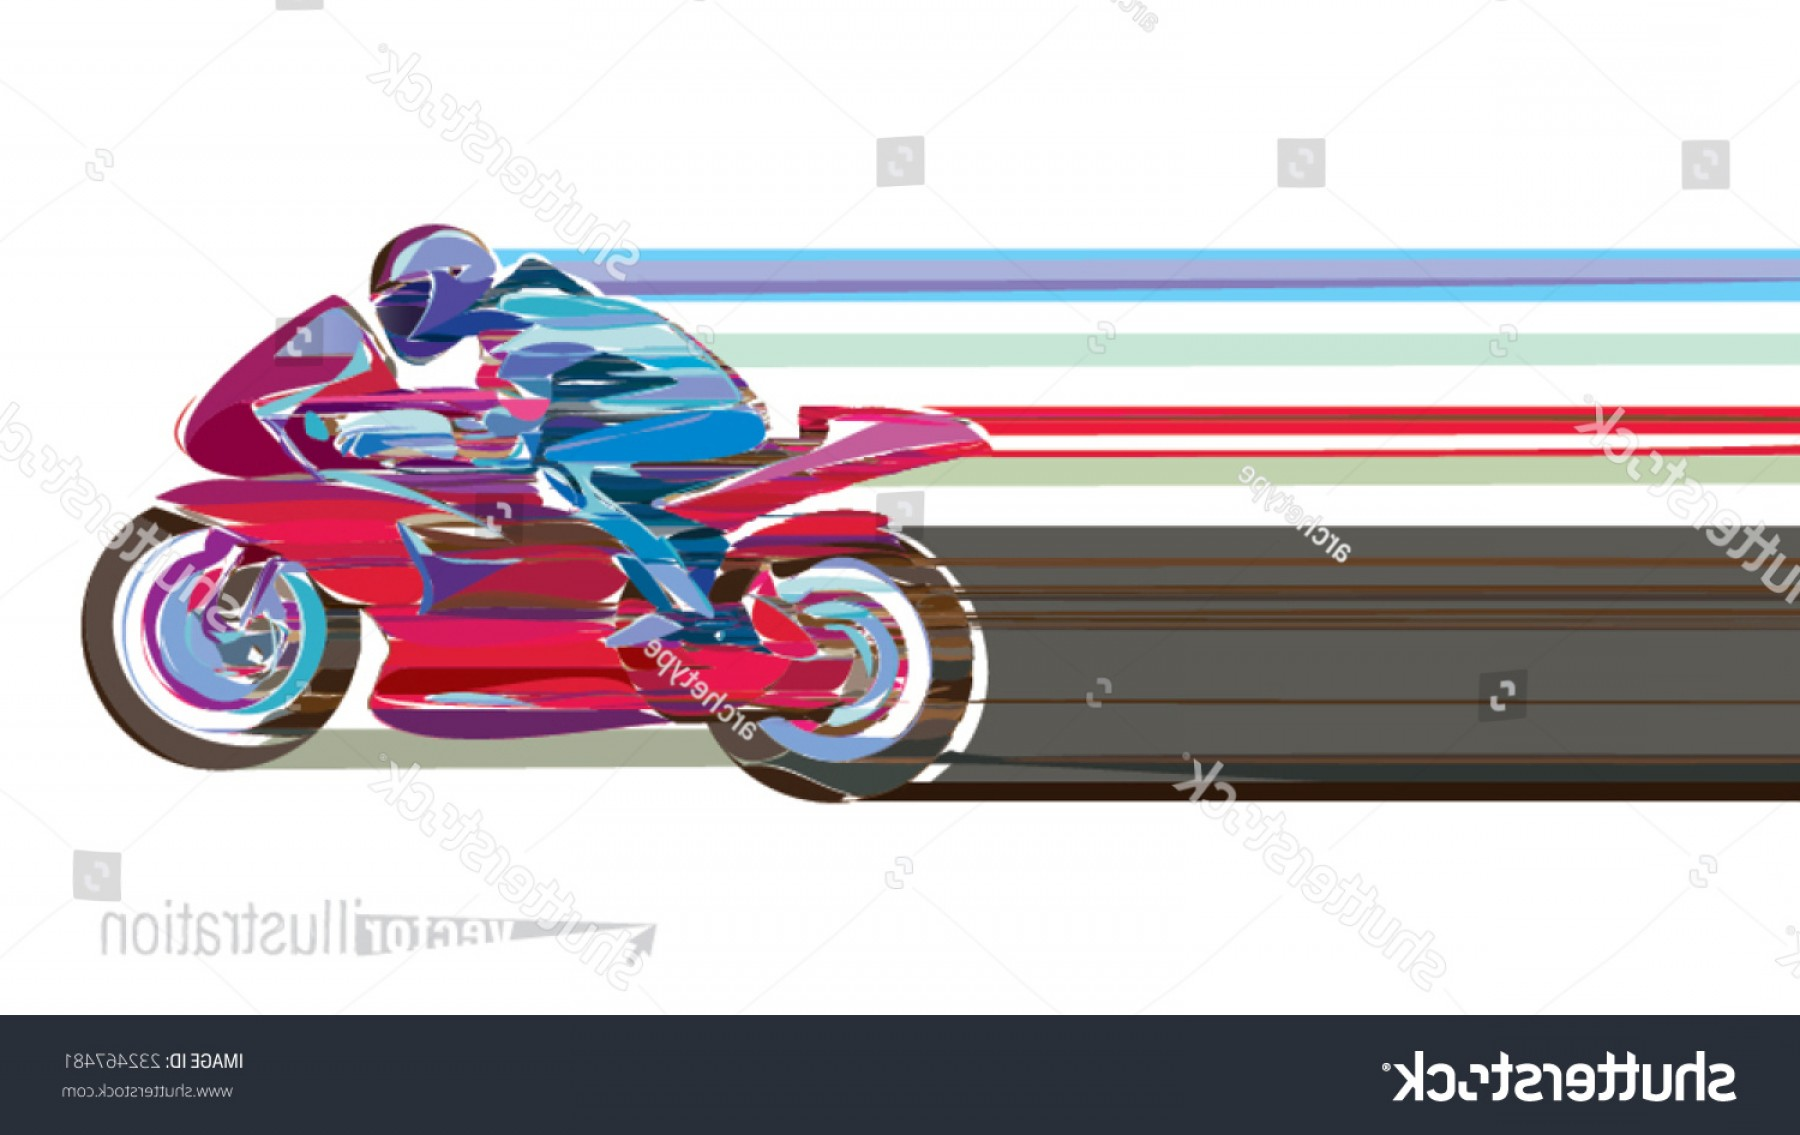 Stylized Vector Motorcycle: Artistic Stylized Motorcycle Racer Motion Vector